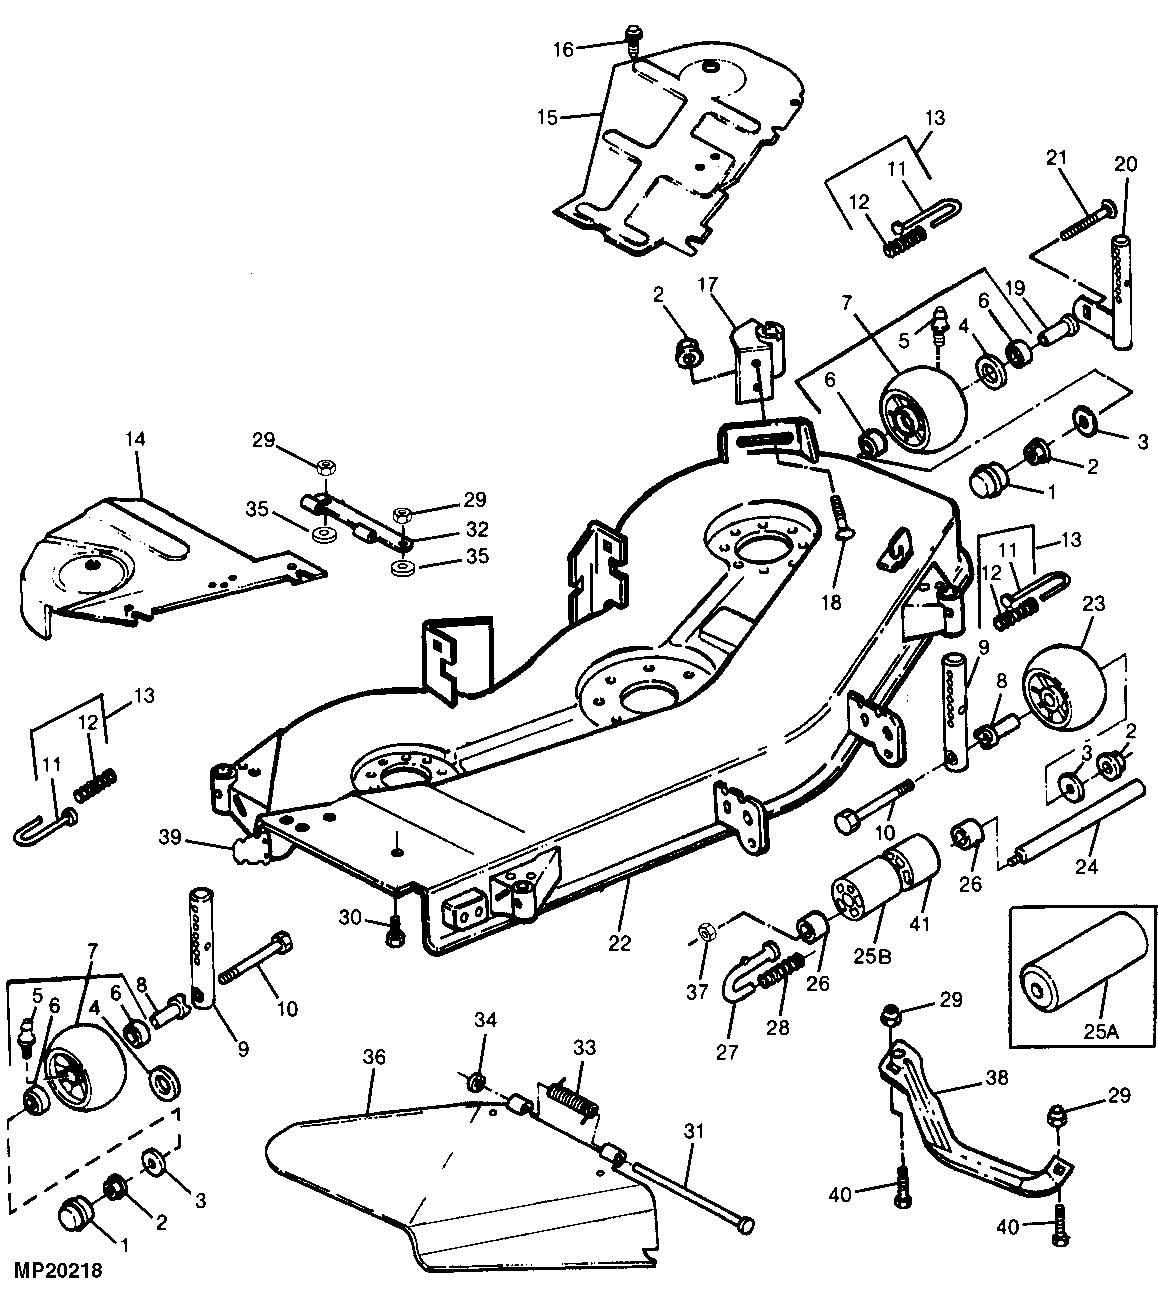 John Deere La150 Parts. John Deere Parts Catalog Repair Manual. John Deere. John Deere La140 Steering Parts Diagram At Scoala.co